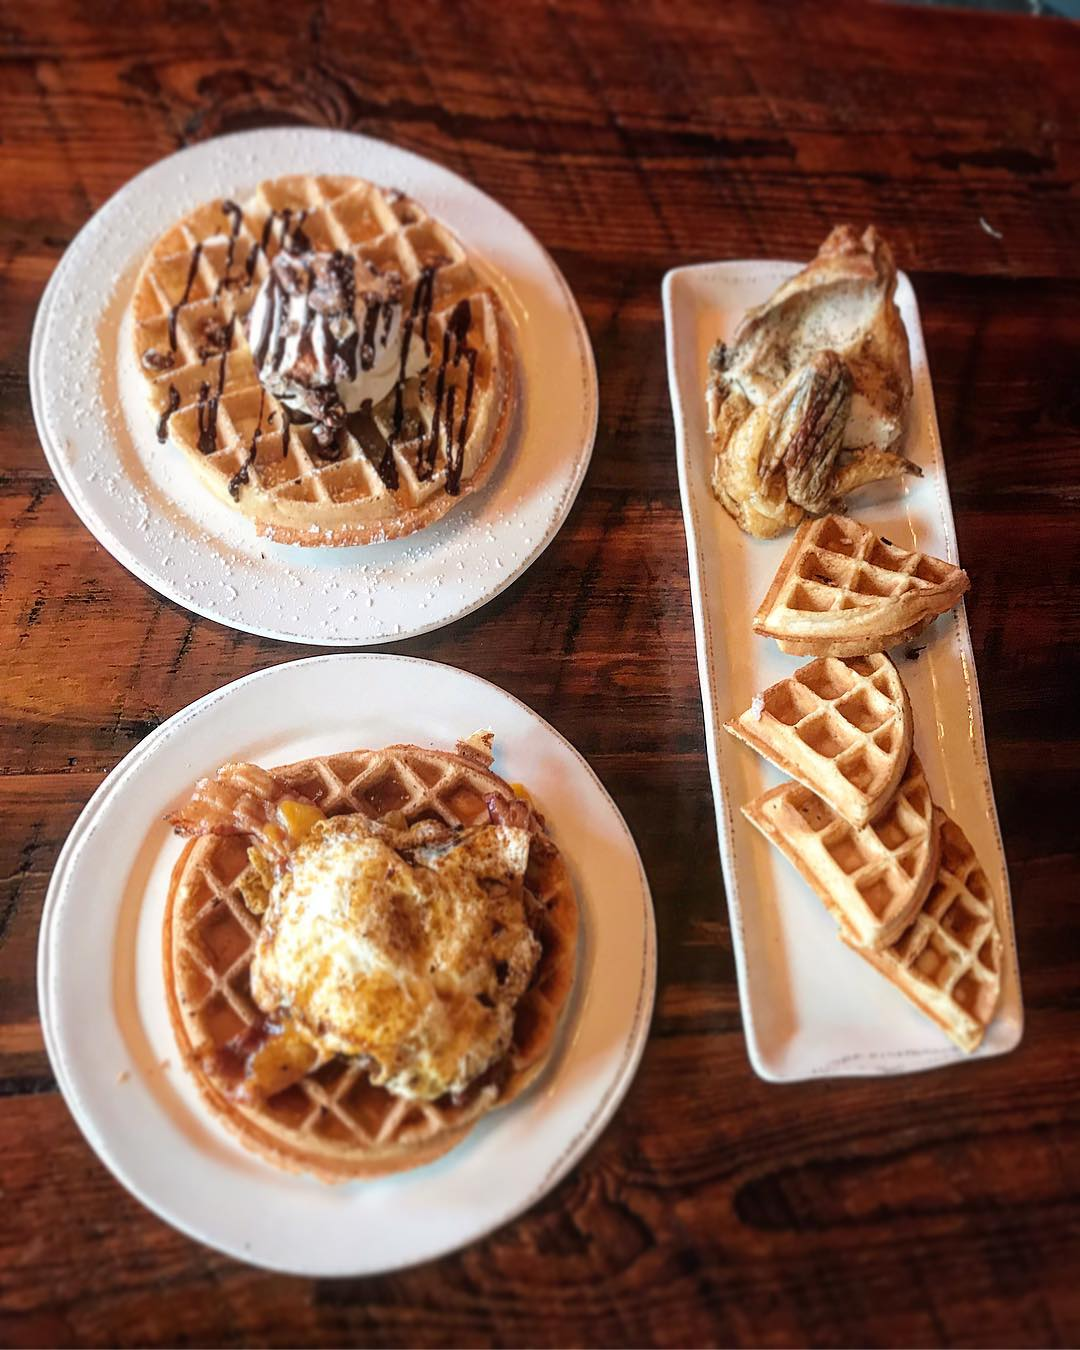 Our waffle selection for tomorrow night: Happiness is a Warm,…